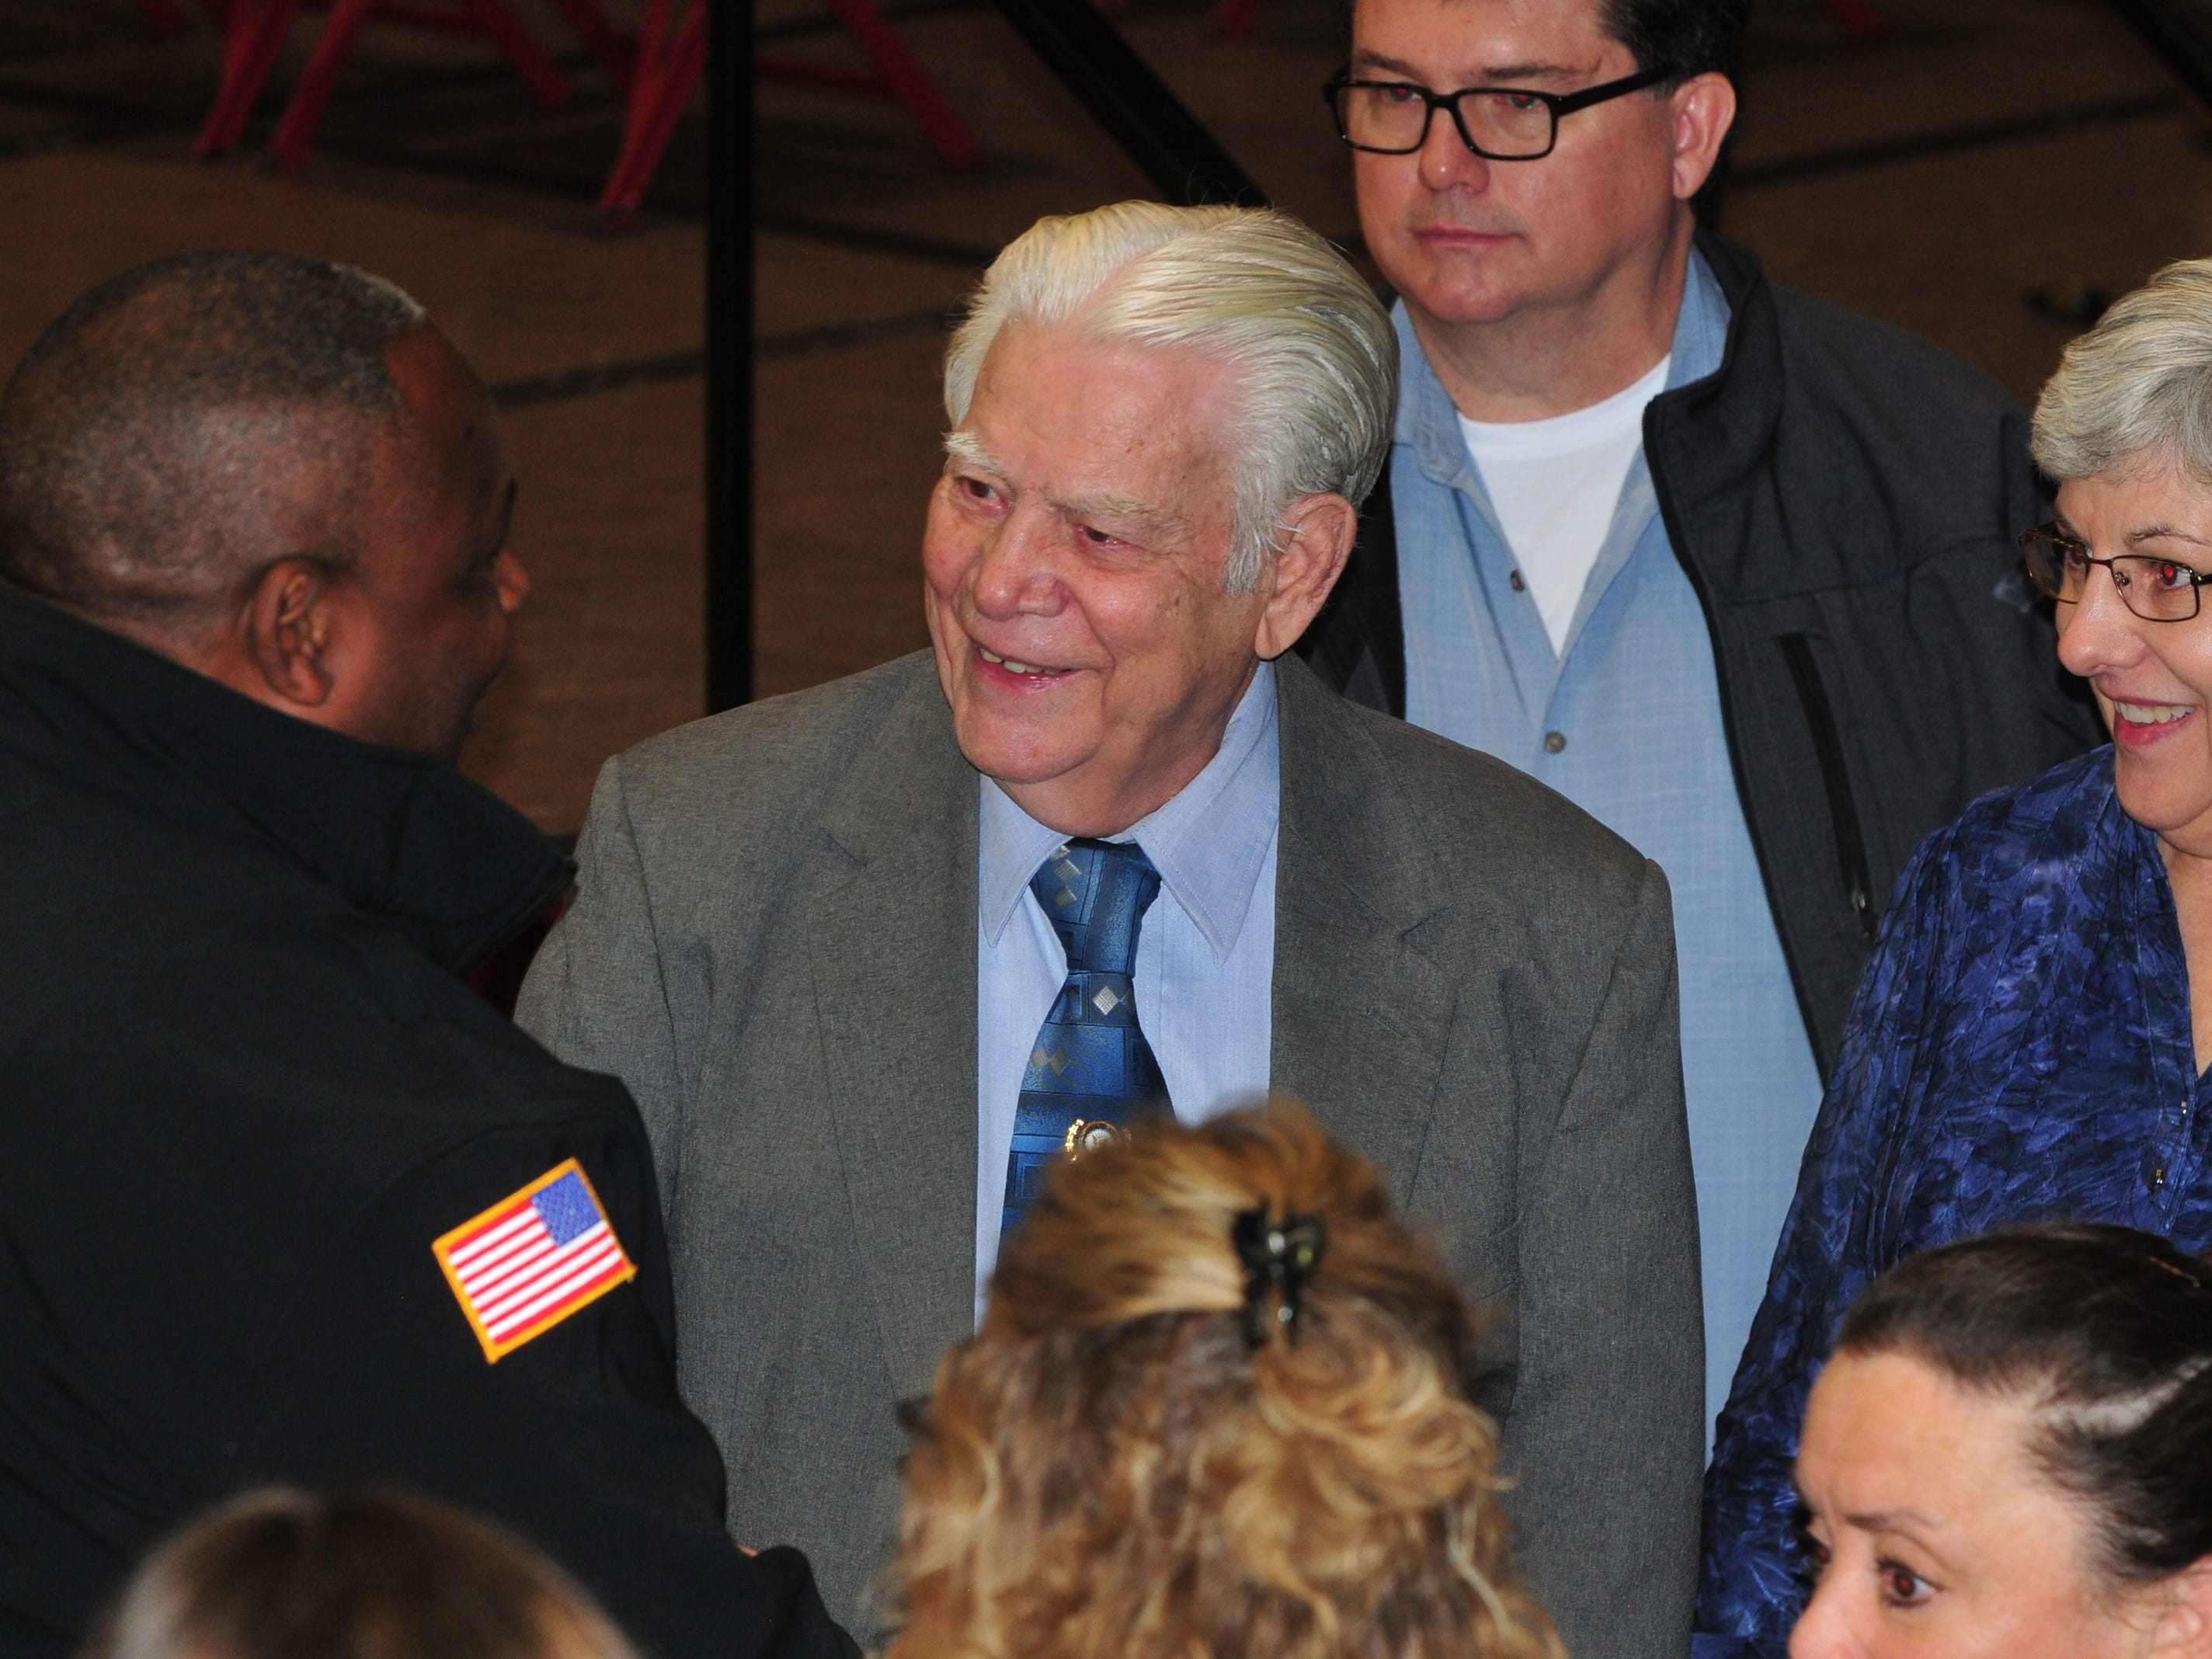 Bill Grimes receives congratulations from school board member Aaron Stevens after Grimes received a diploma during Friday's Veterans Day Program at Richmond High School.